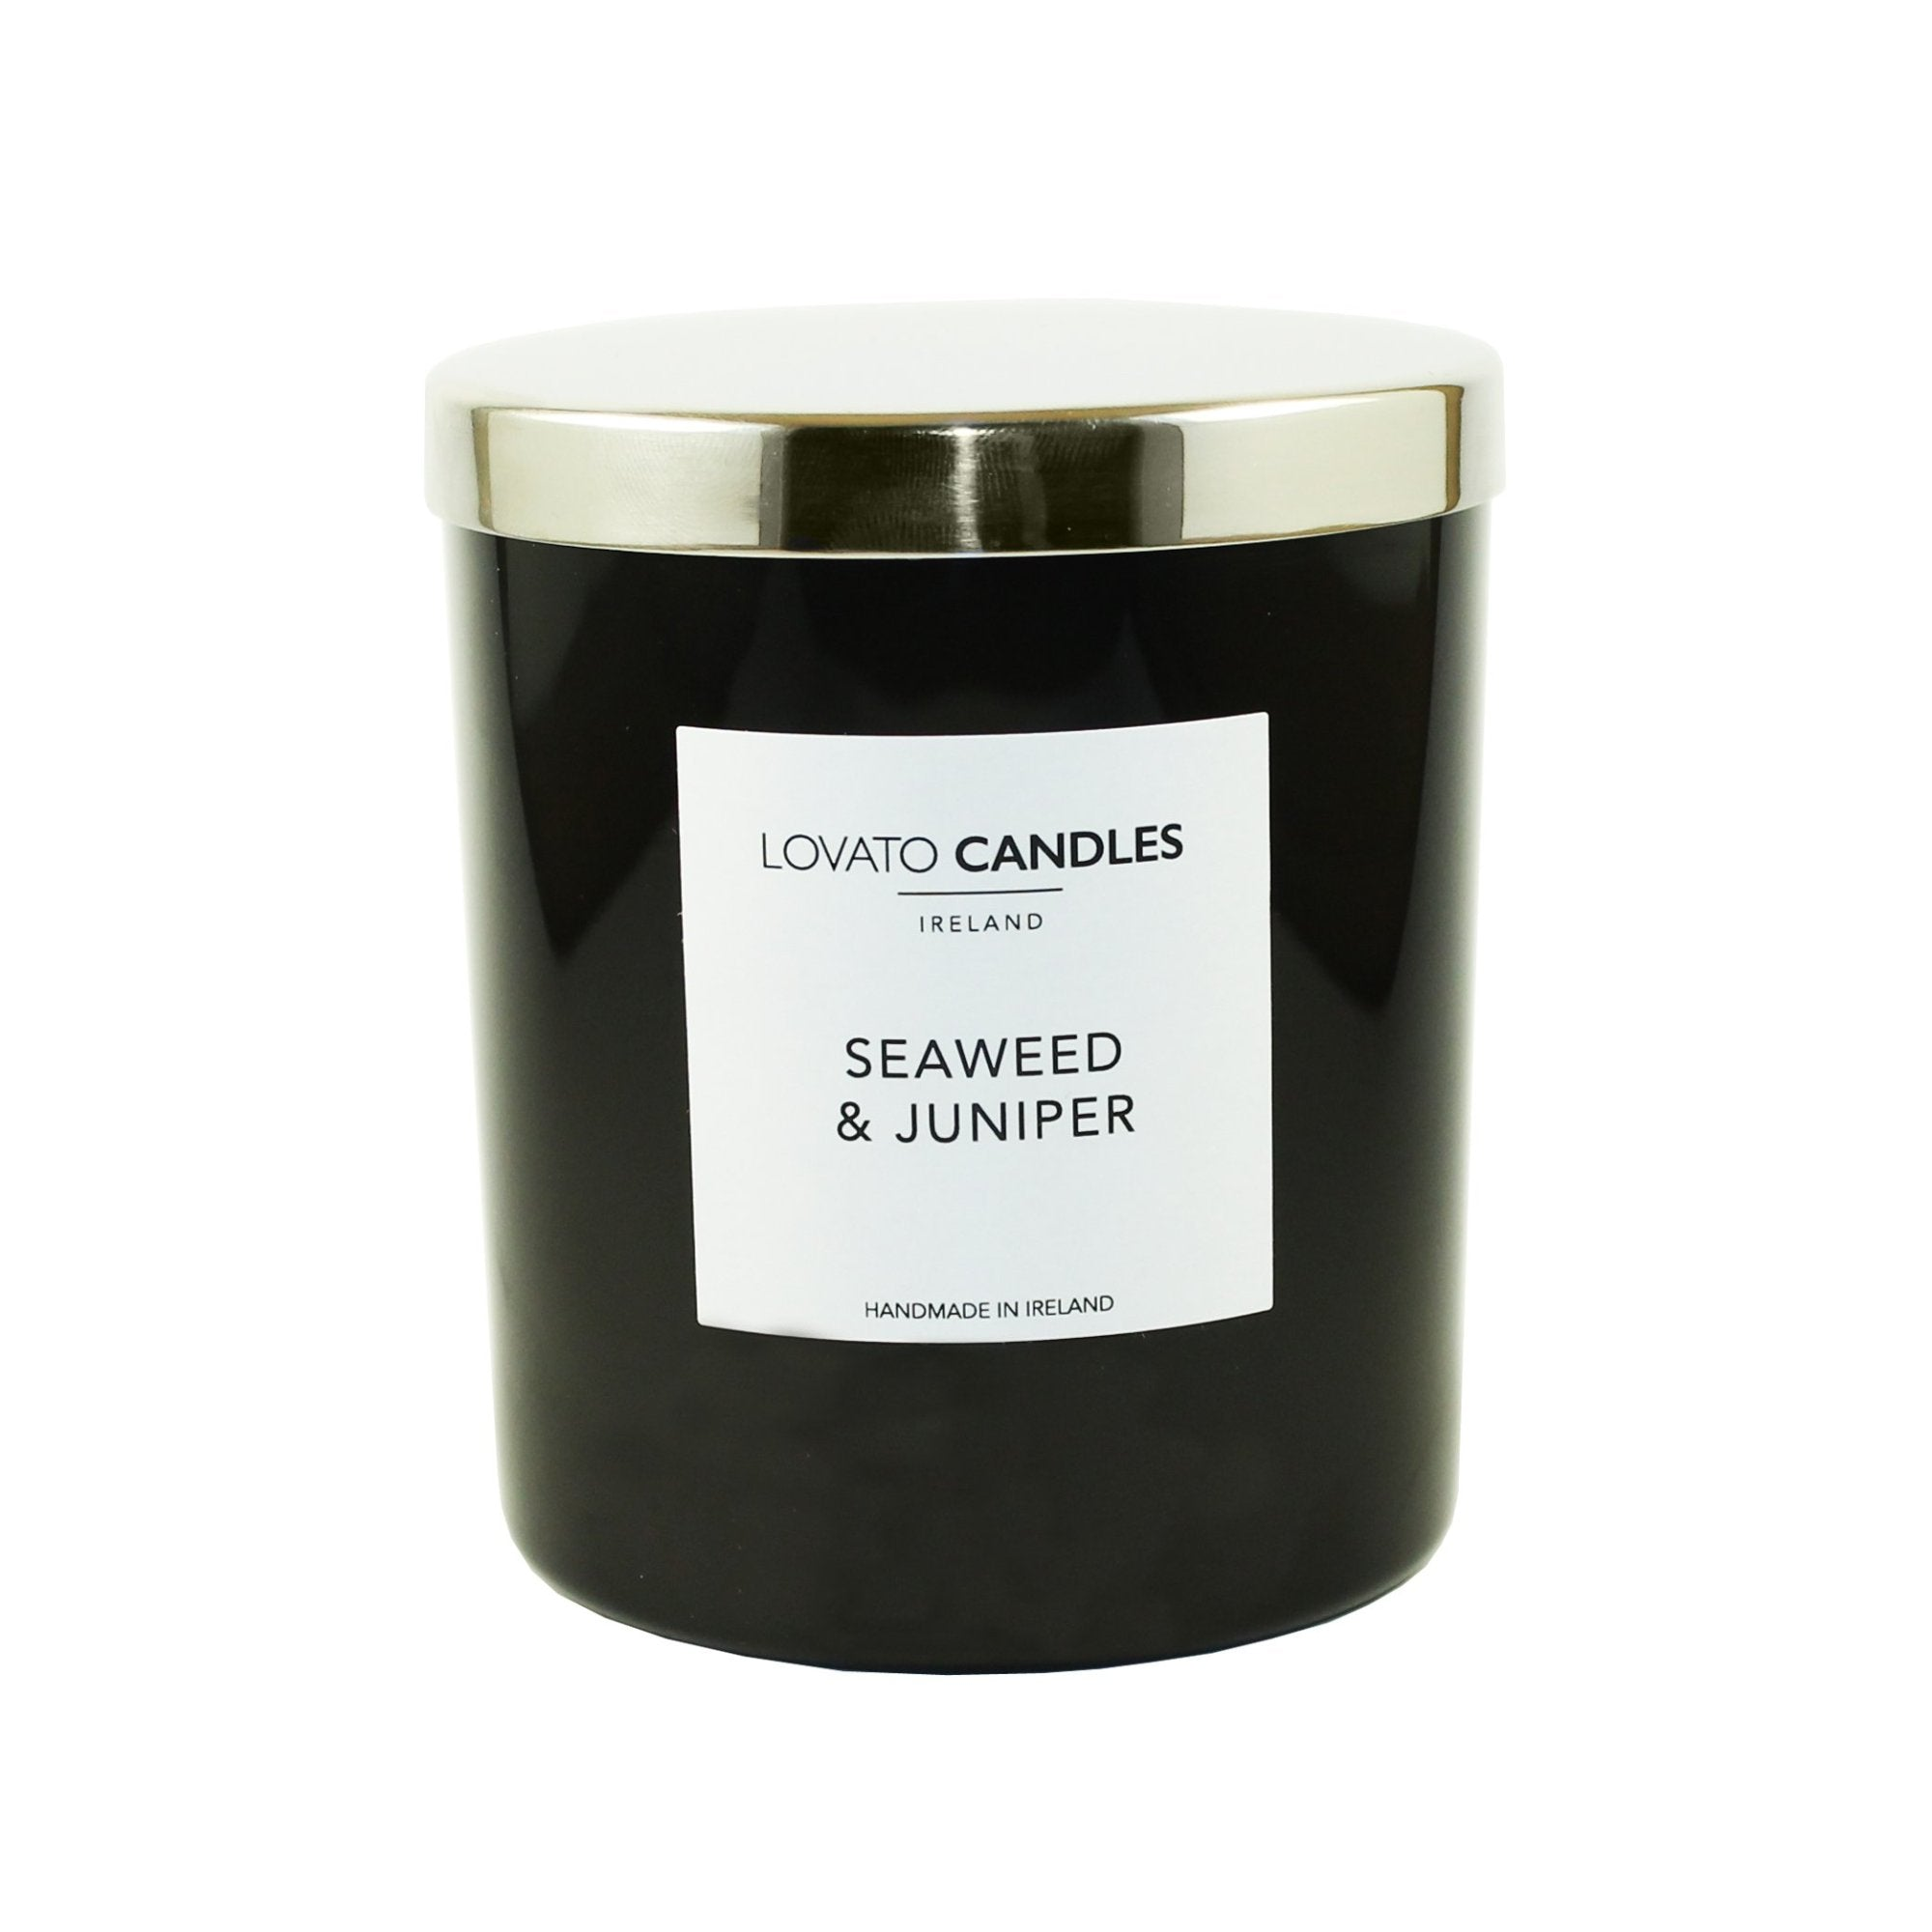 Luxury Black Candle - Seaweed & Juniper - Lovato Candles